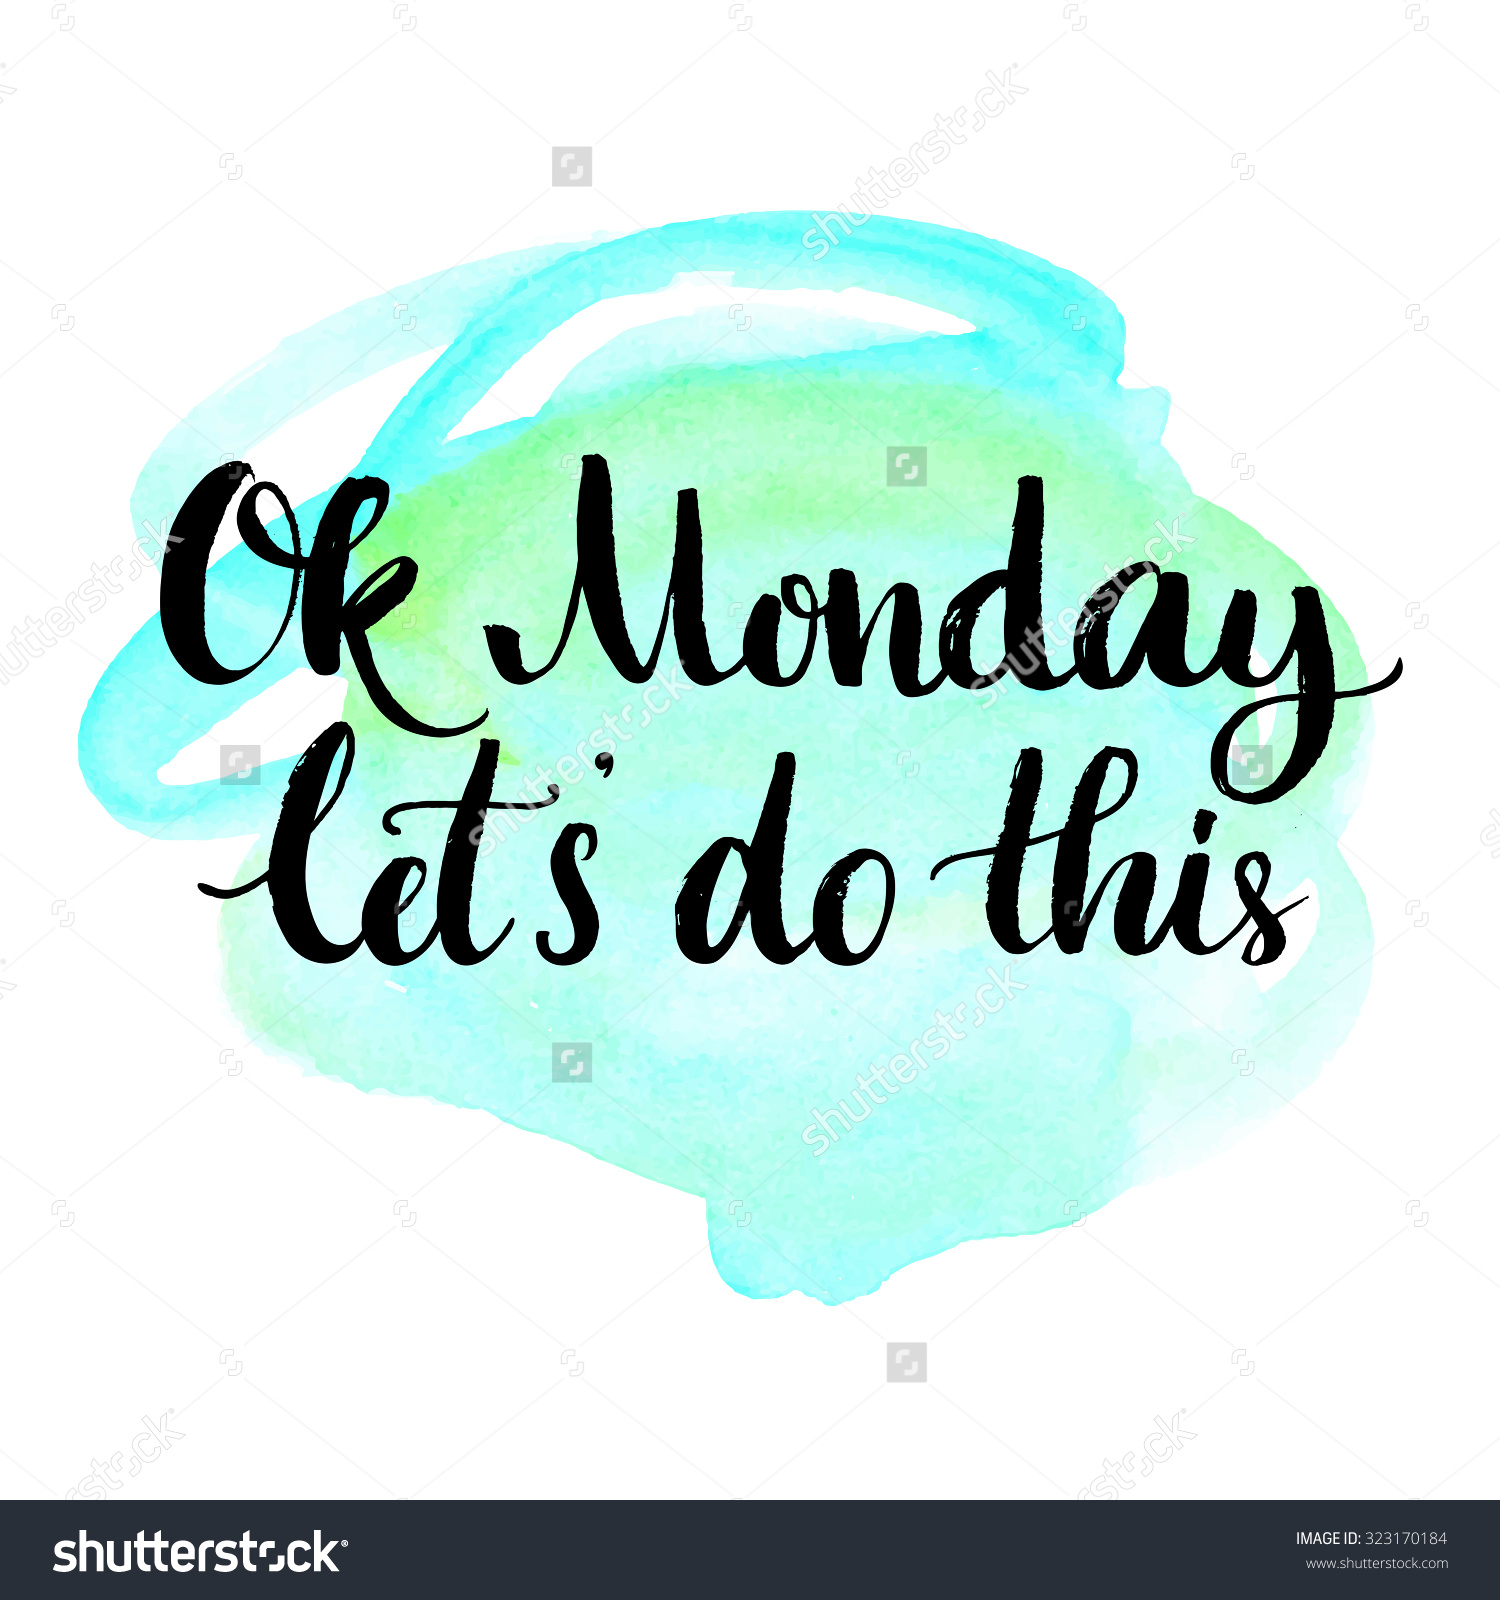 inspirational quotes clipart at getdrawings com free for personal rh getdrawings com happy monday morning clipart animated happy monday clipart